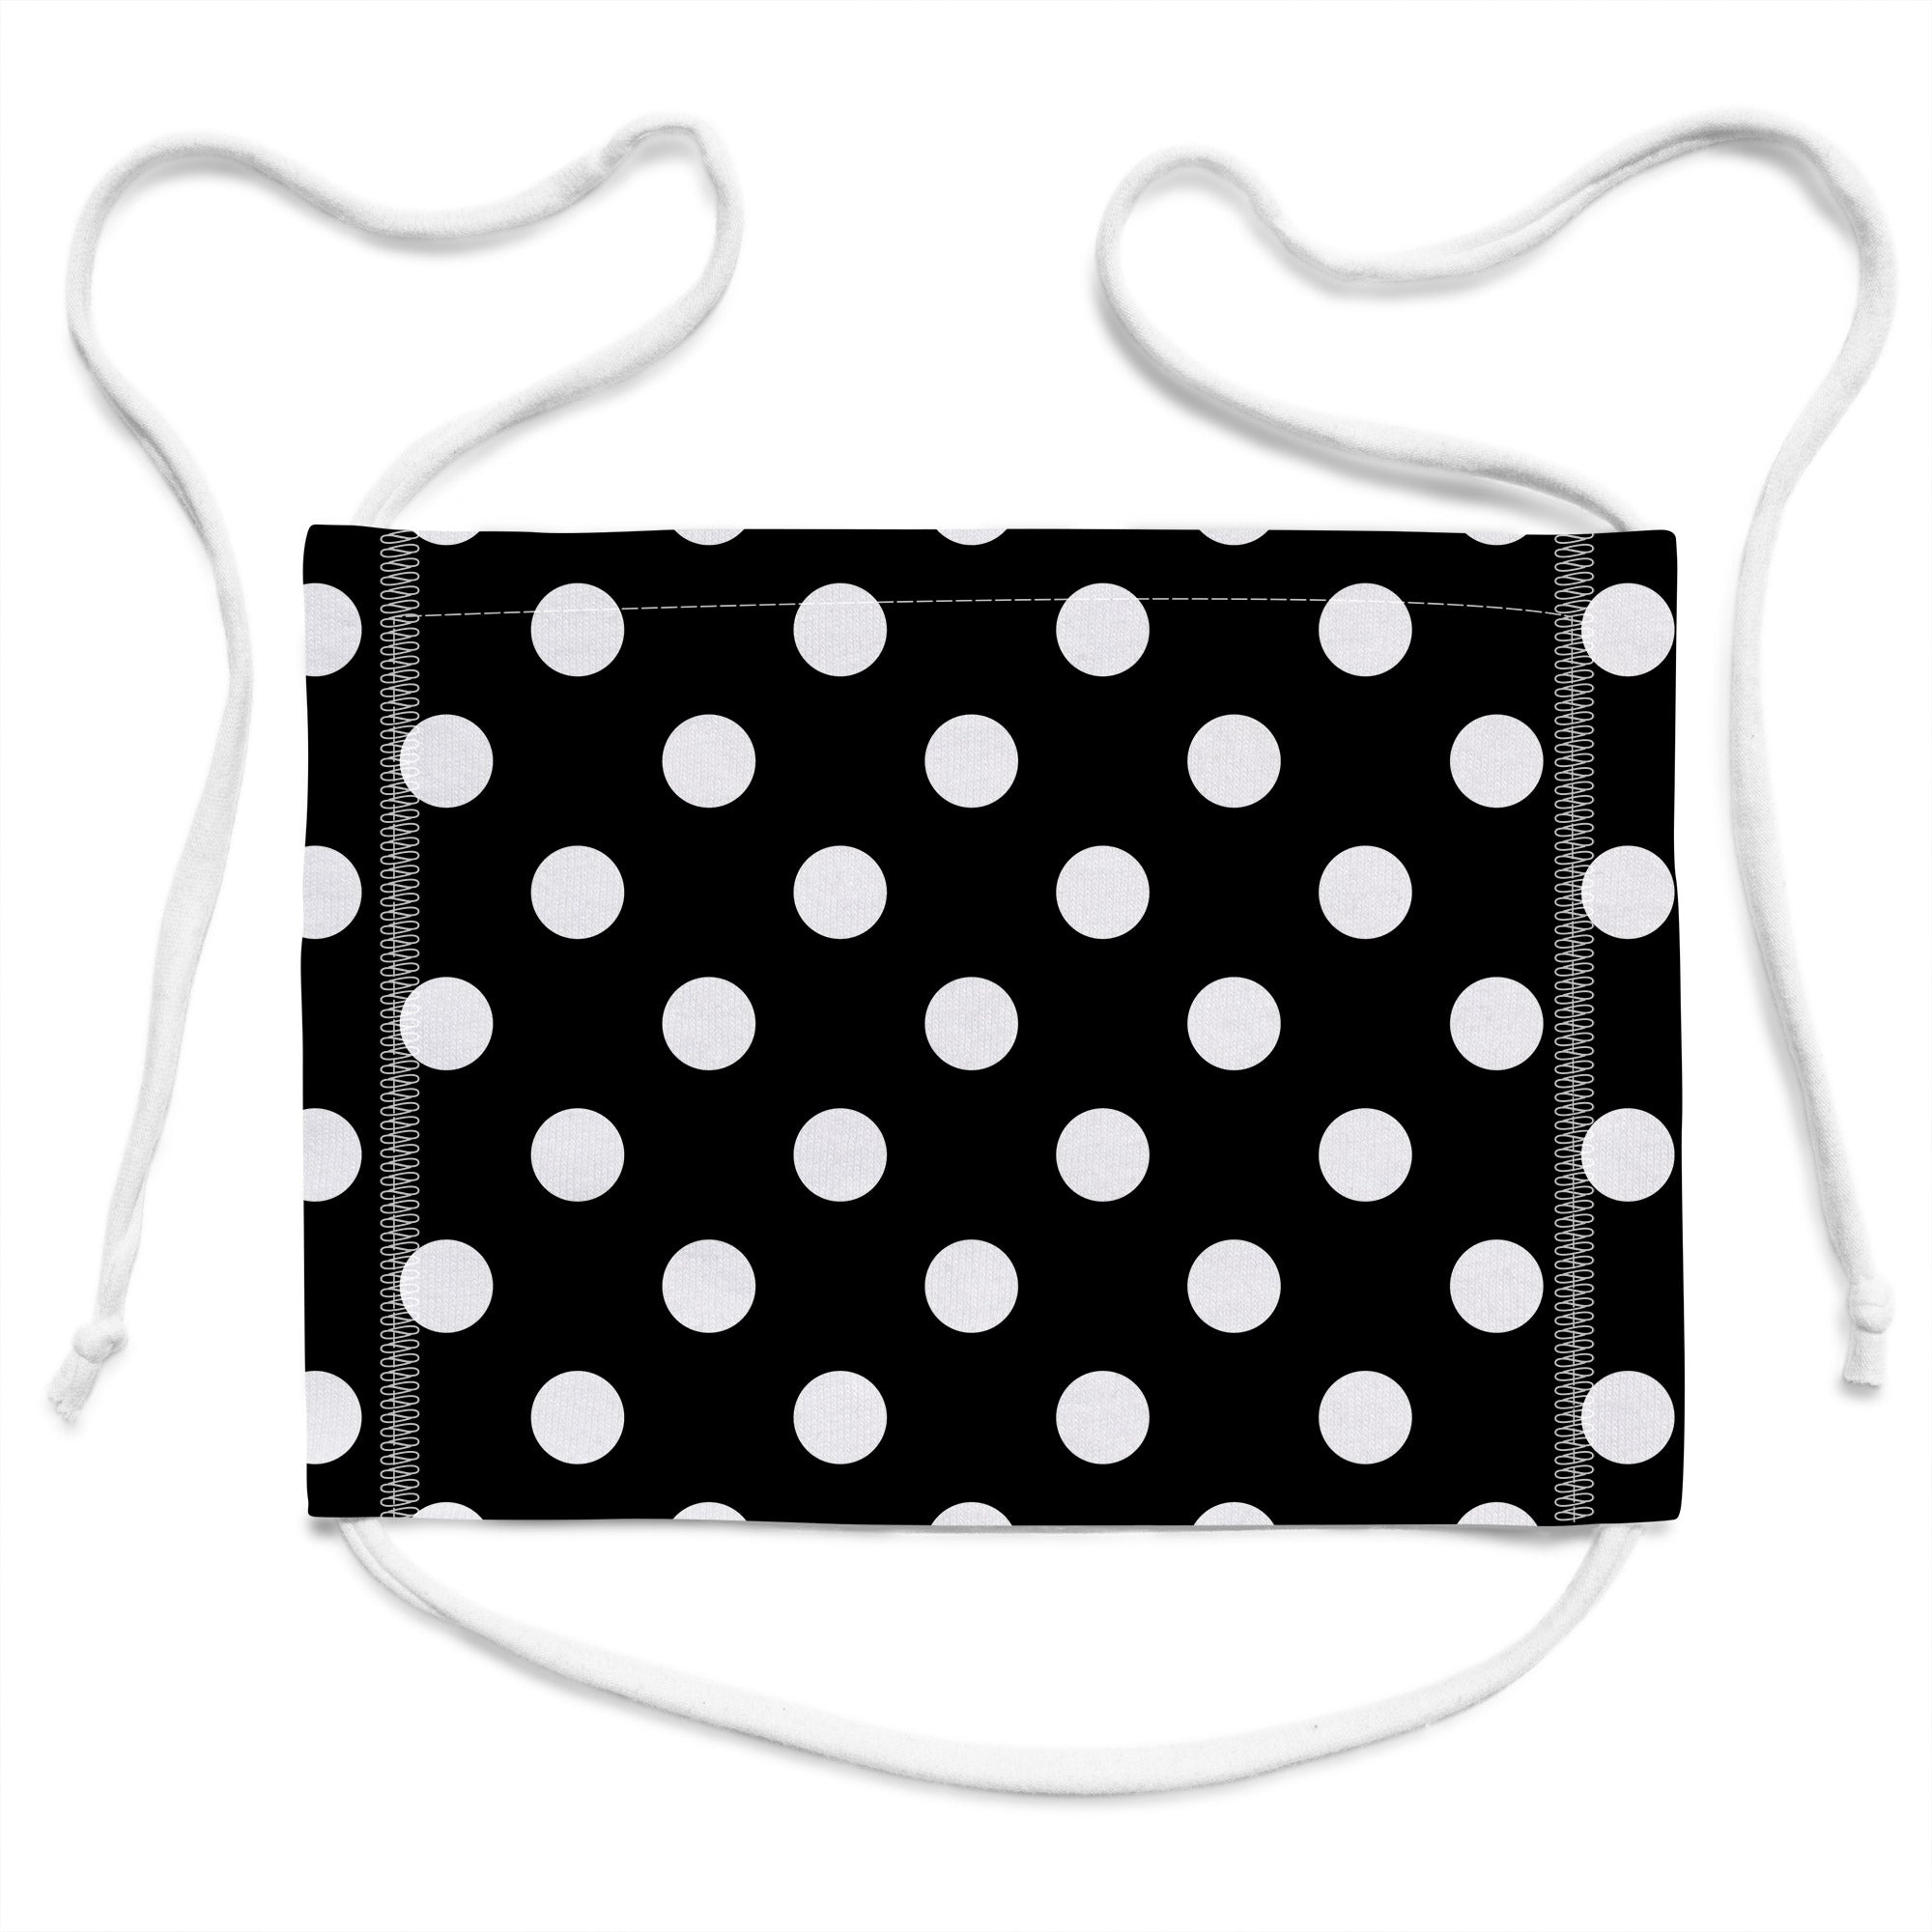 CHEAP Black Polka Face Mask 26660545795 – Clothing Accessories